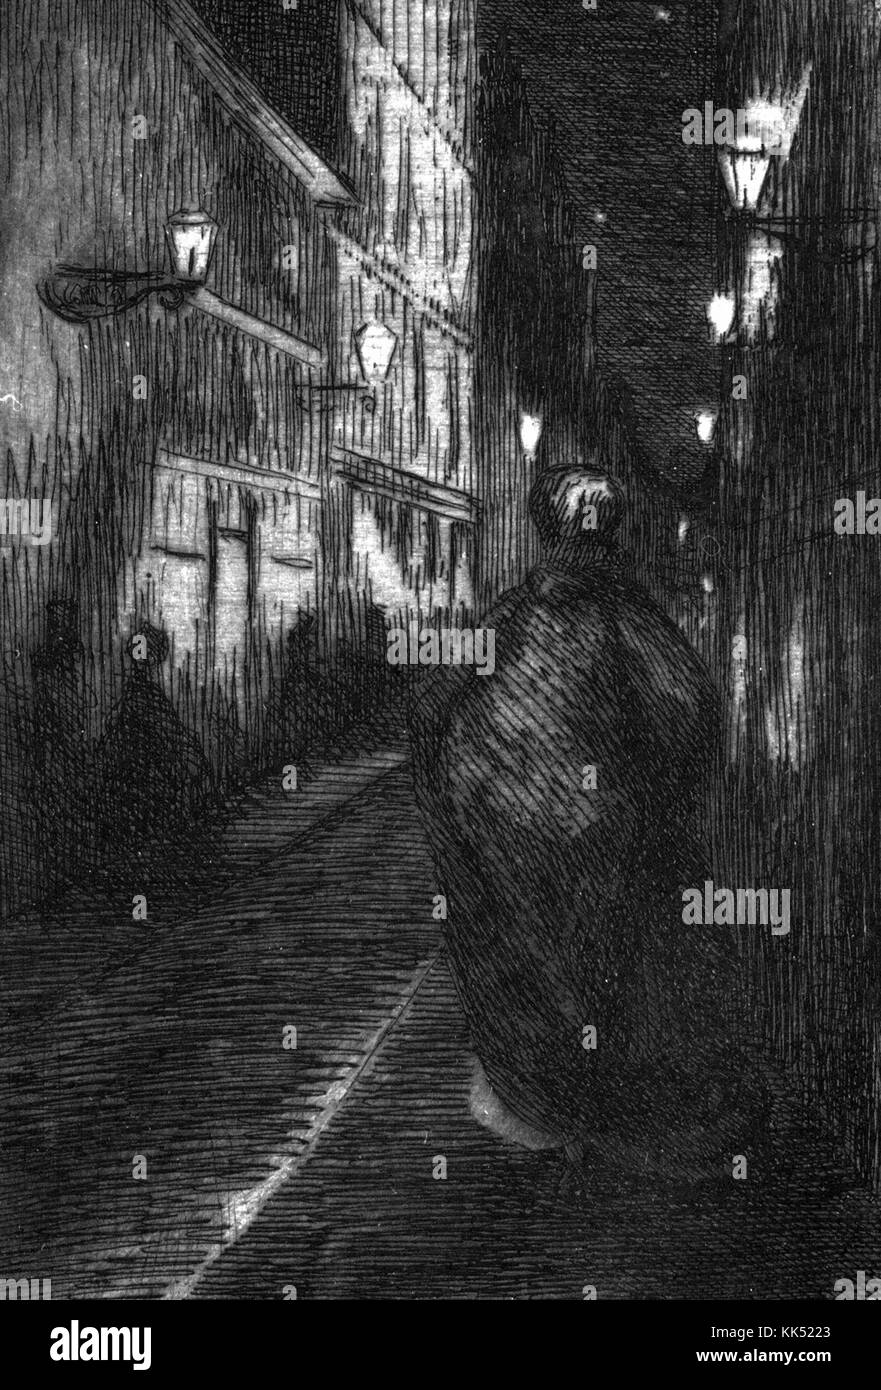 An engraving from an illustration called Paris la Nuit which translates to Paris by Night, a figure cloaked in a - Stock Image